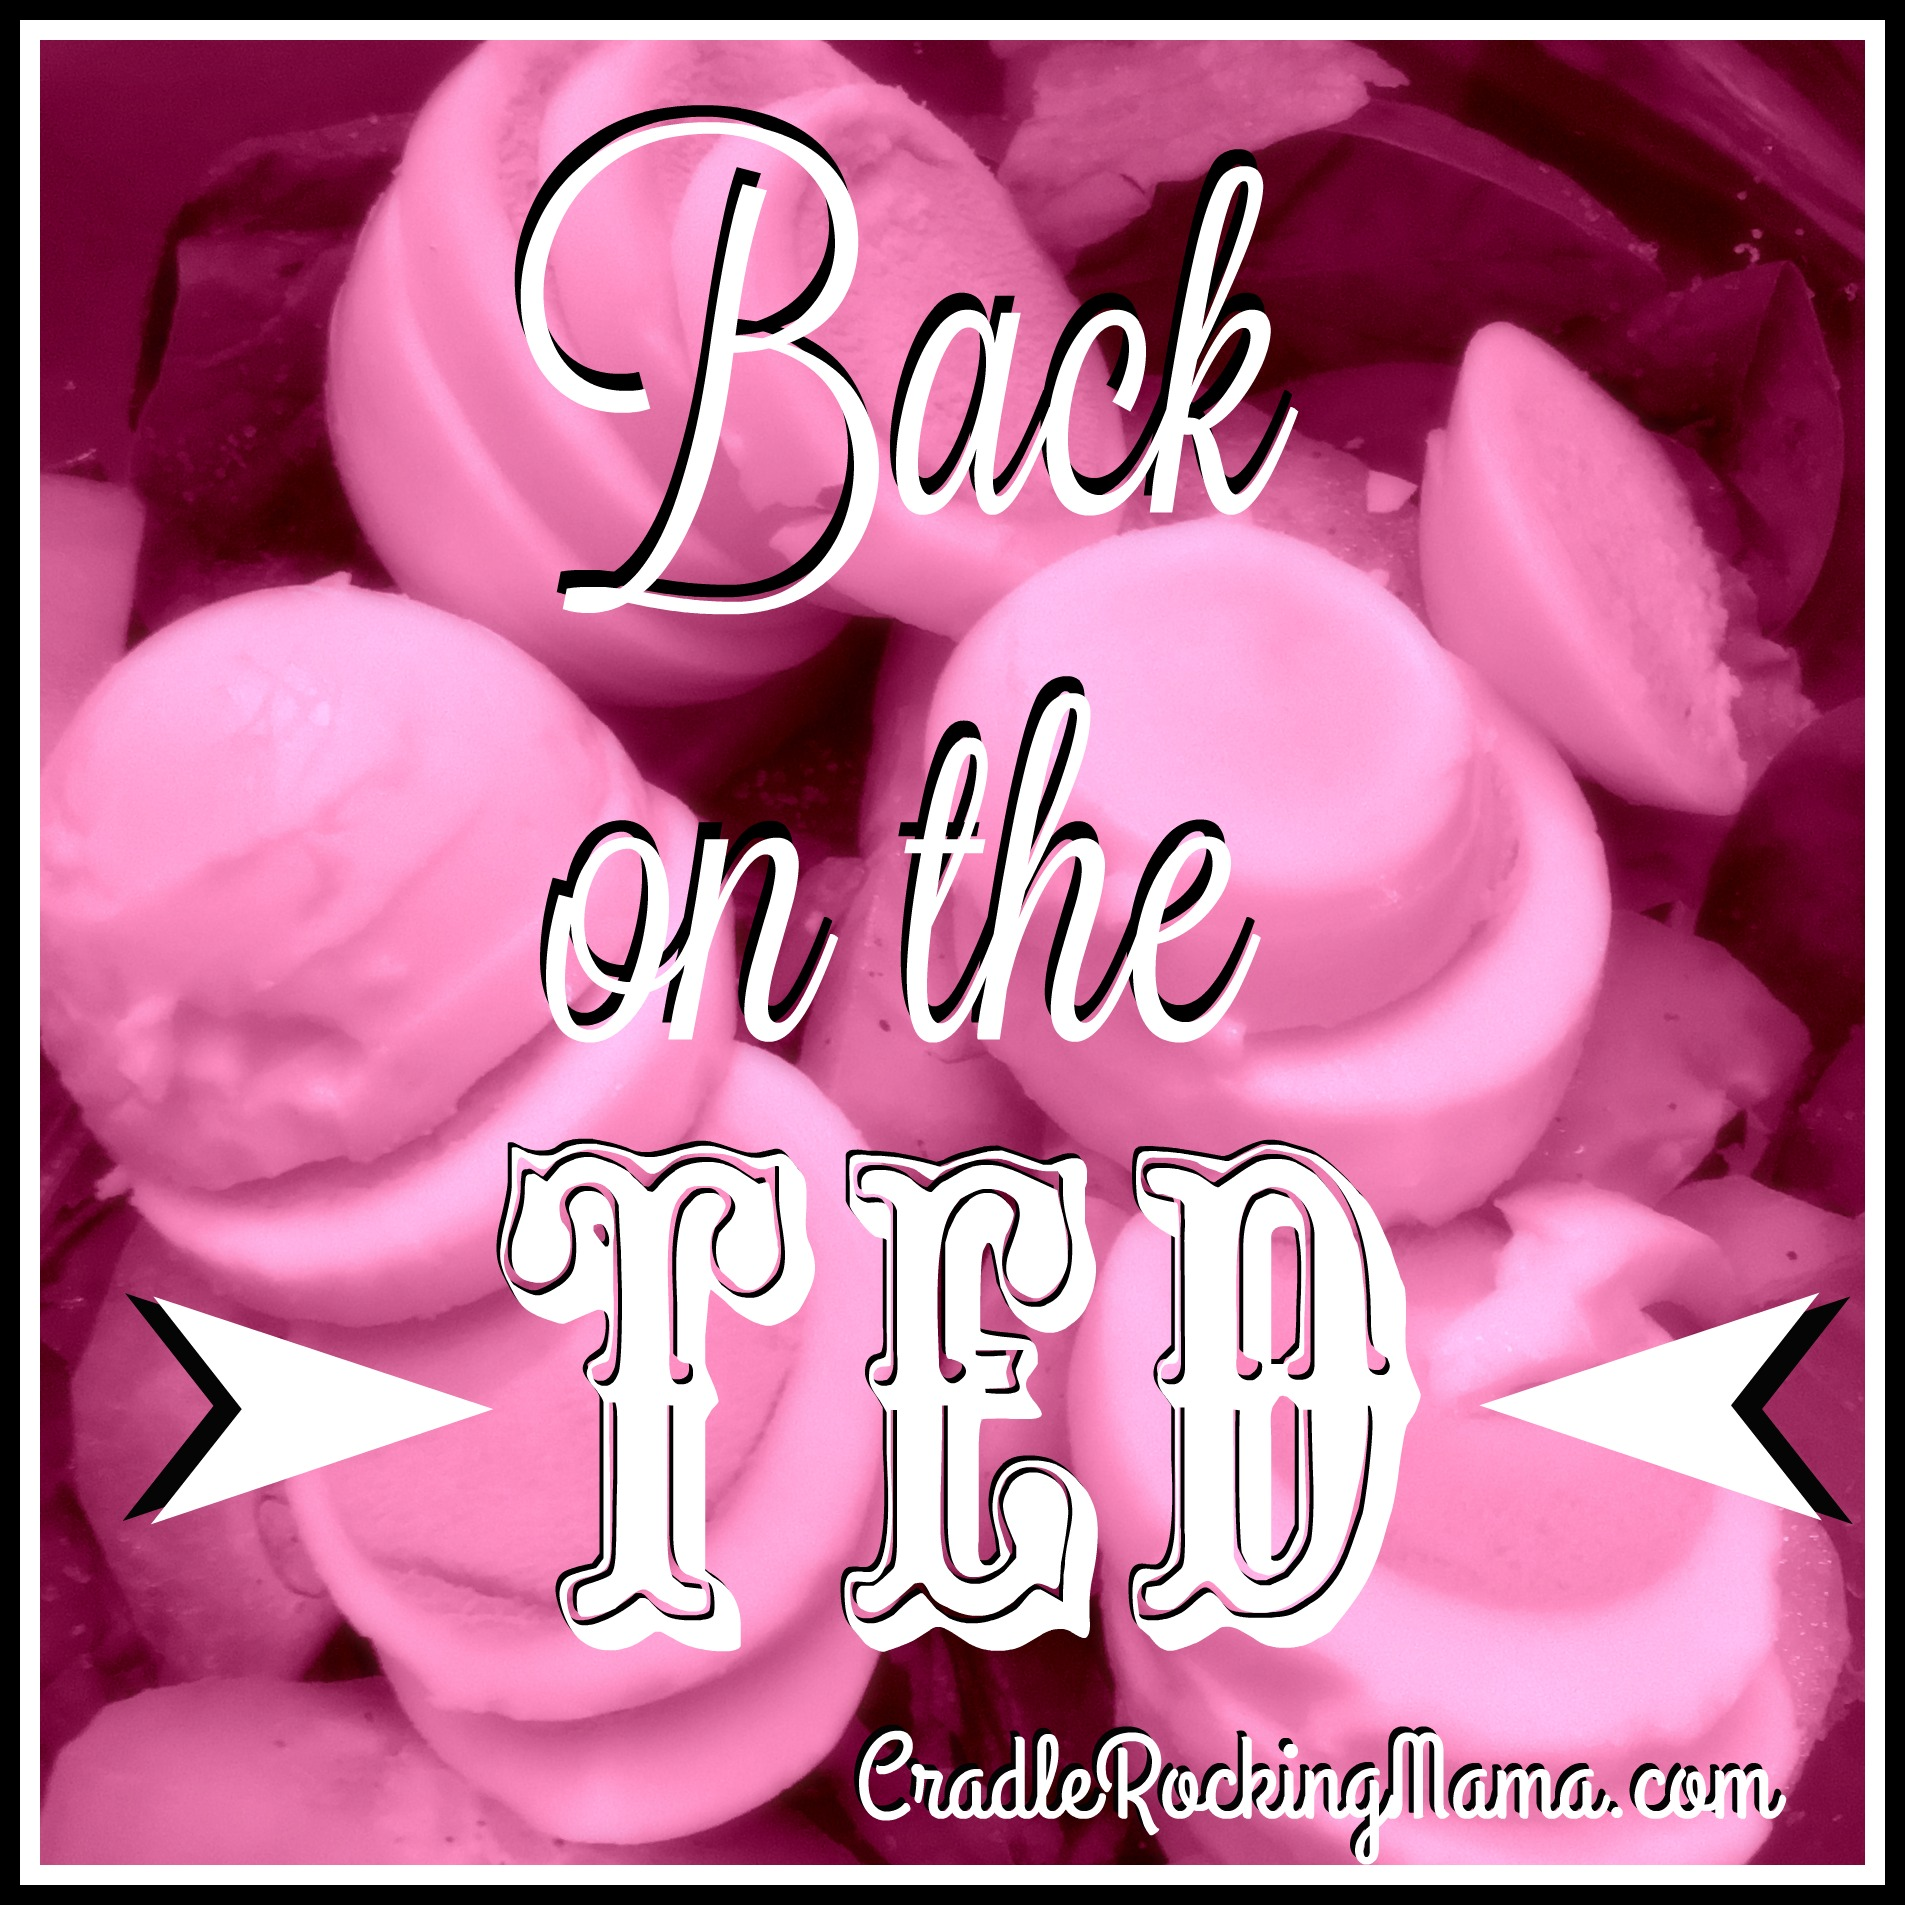 Back on the TED CradleRockingMama.com